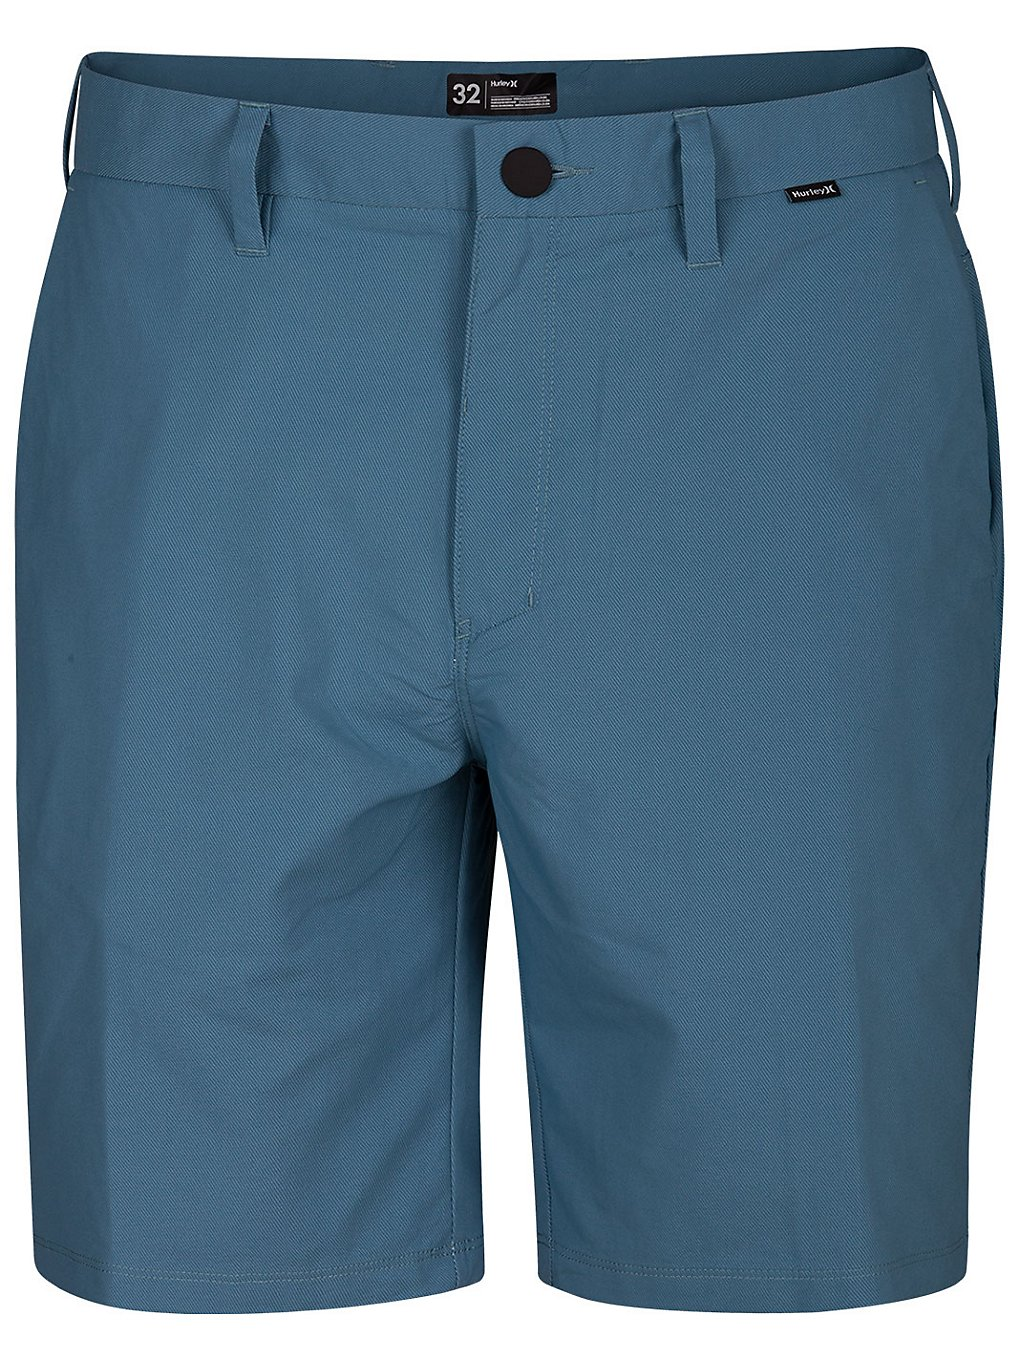 Hurley Dri-Fit Chino 19'' Shorts blue Herren